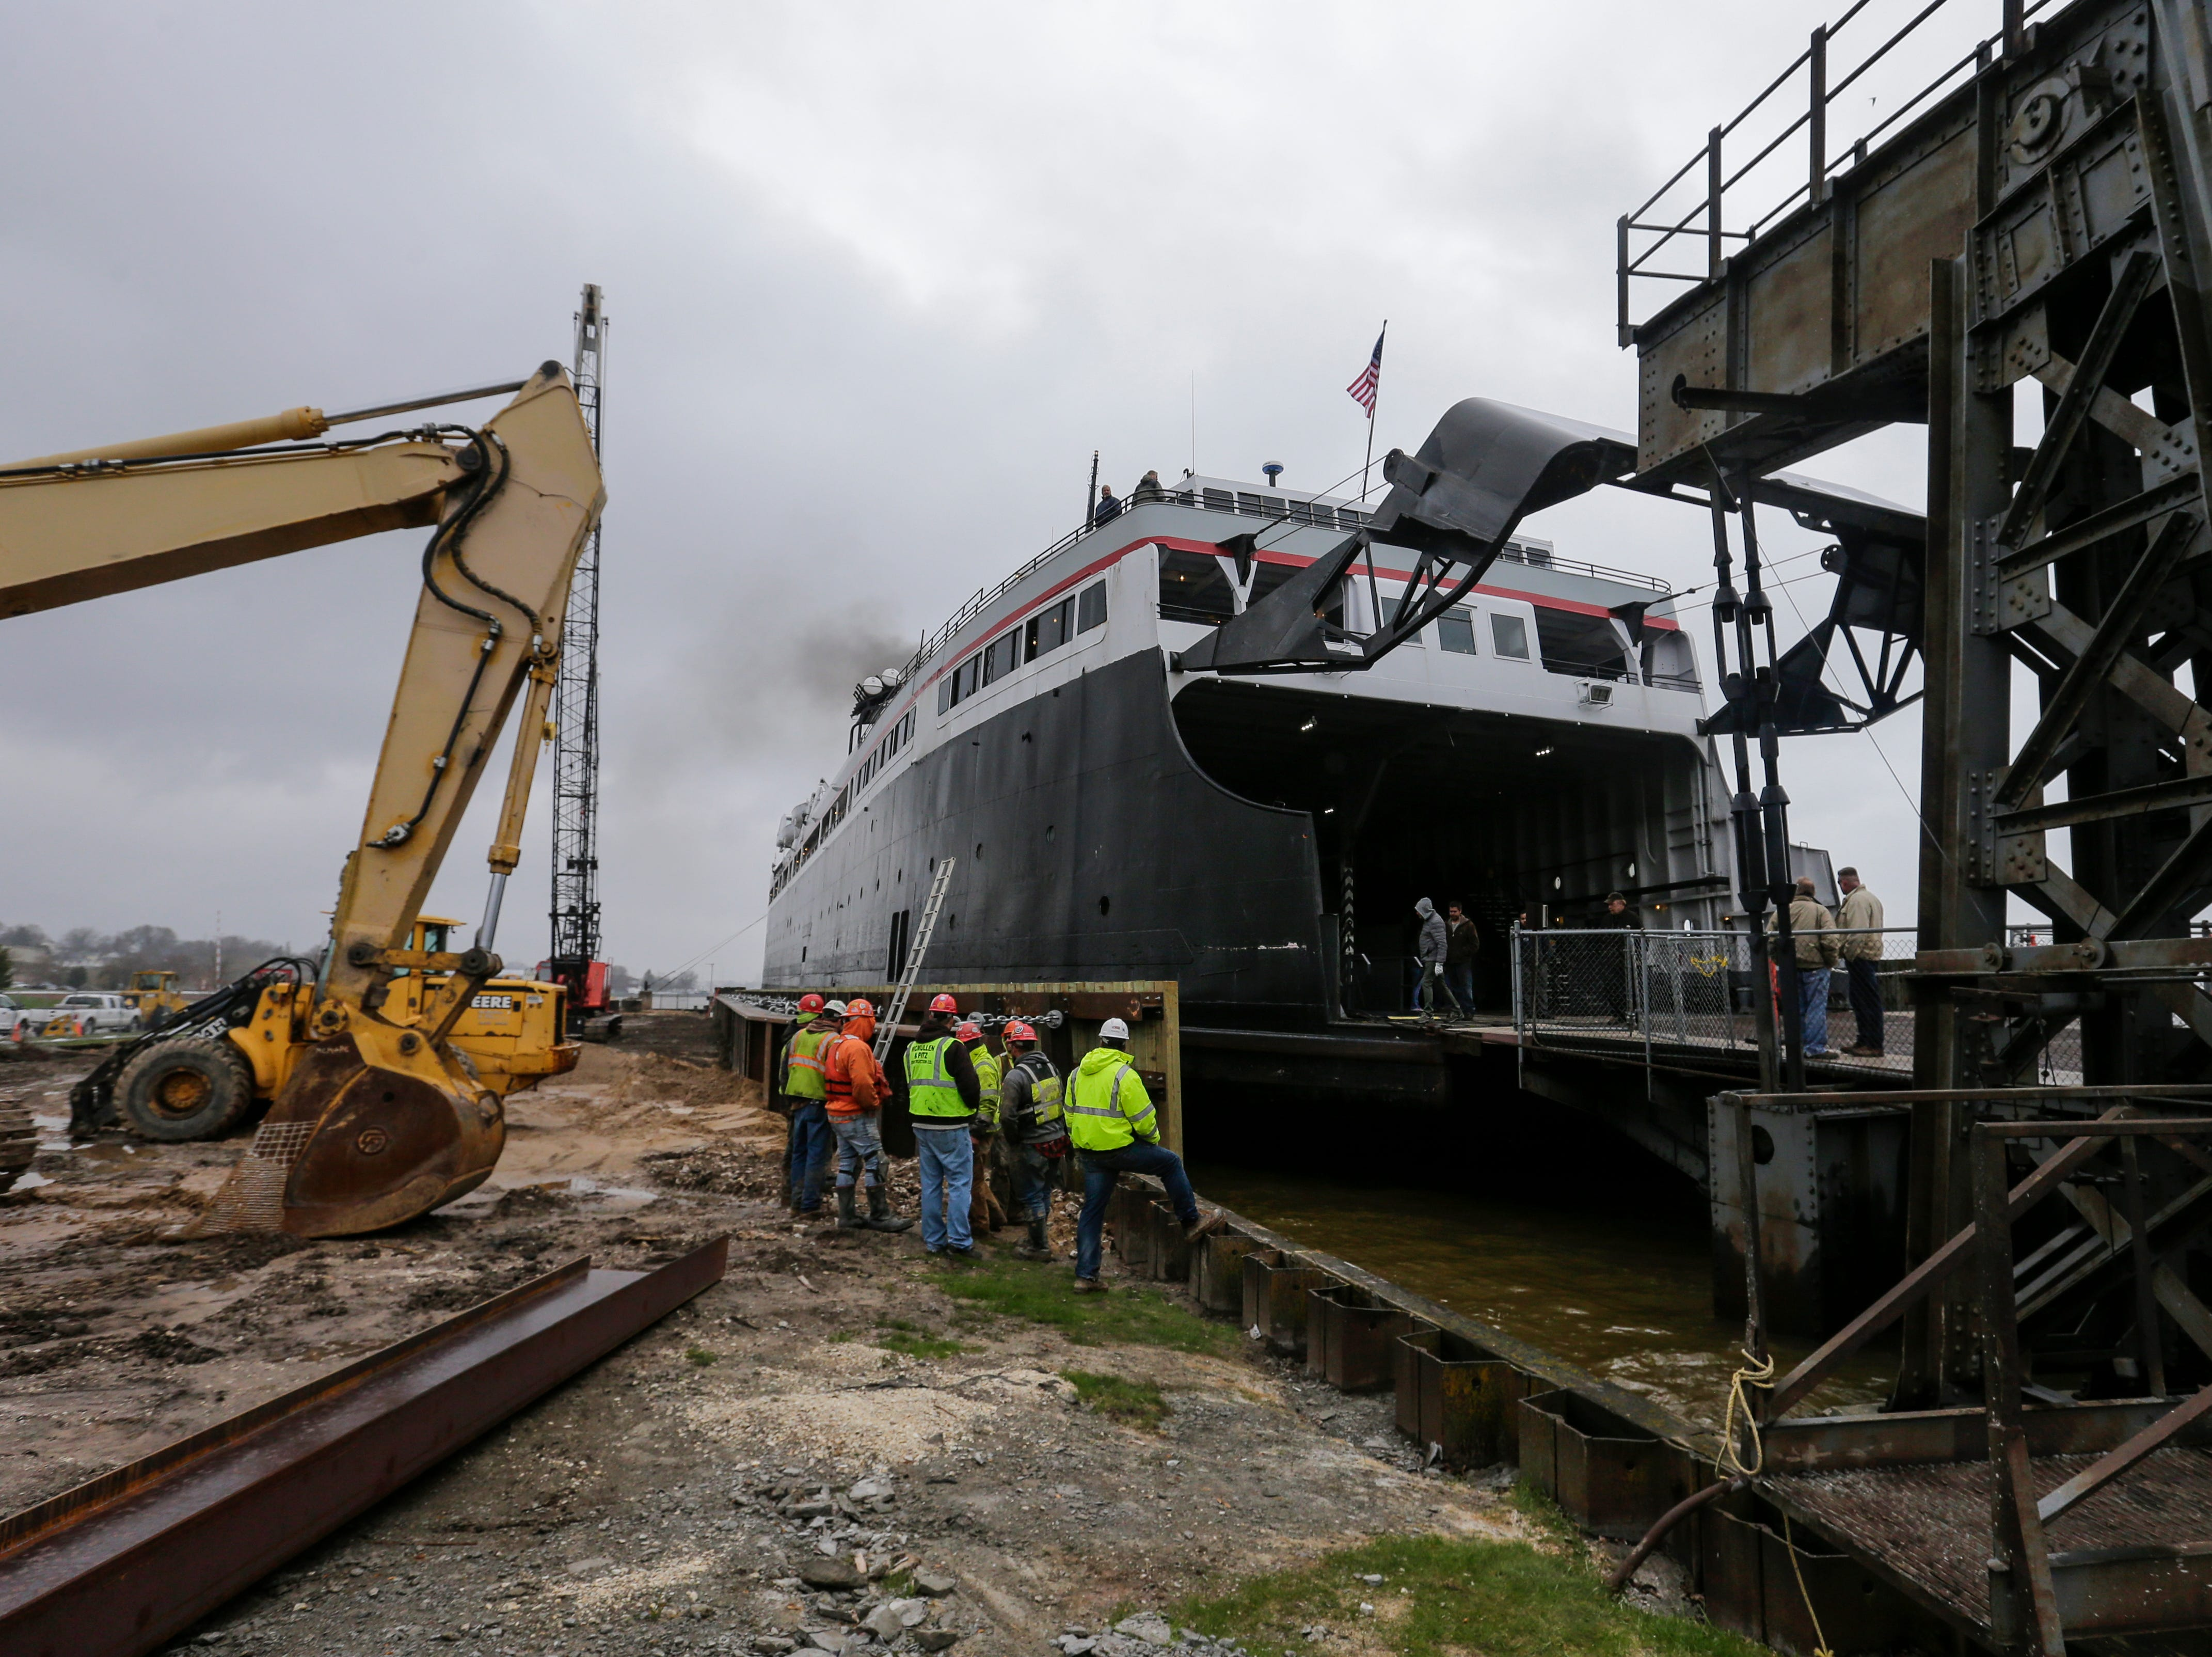 The S.S. Badger successfully docks on the newly constructed dock and wall Thursday, May 9, 2019, in Manitowoc, Wis. Joshua Clark/USA TODAY NETWORK-Wisconsin